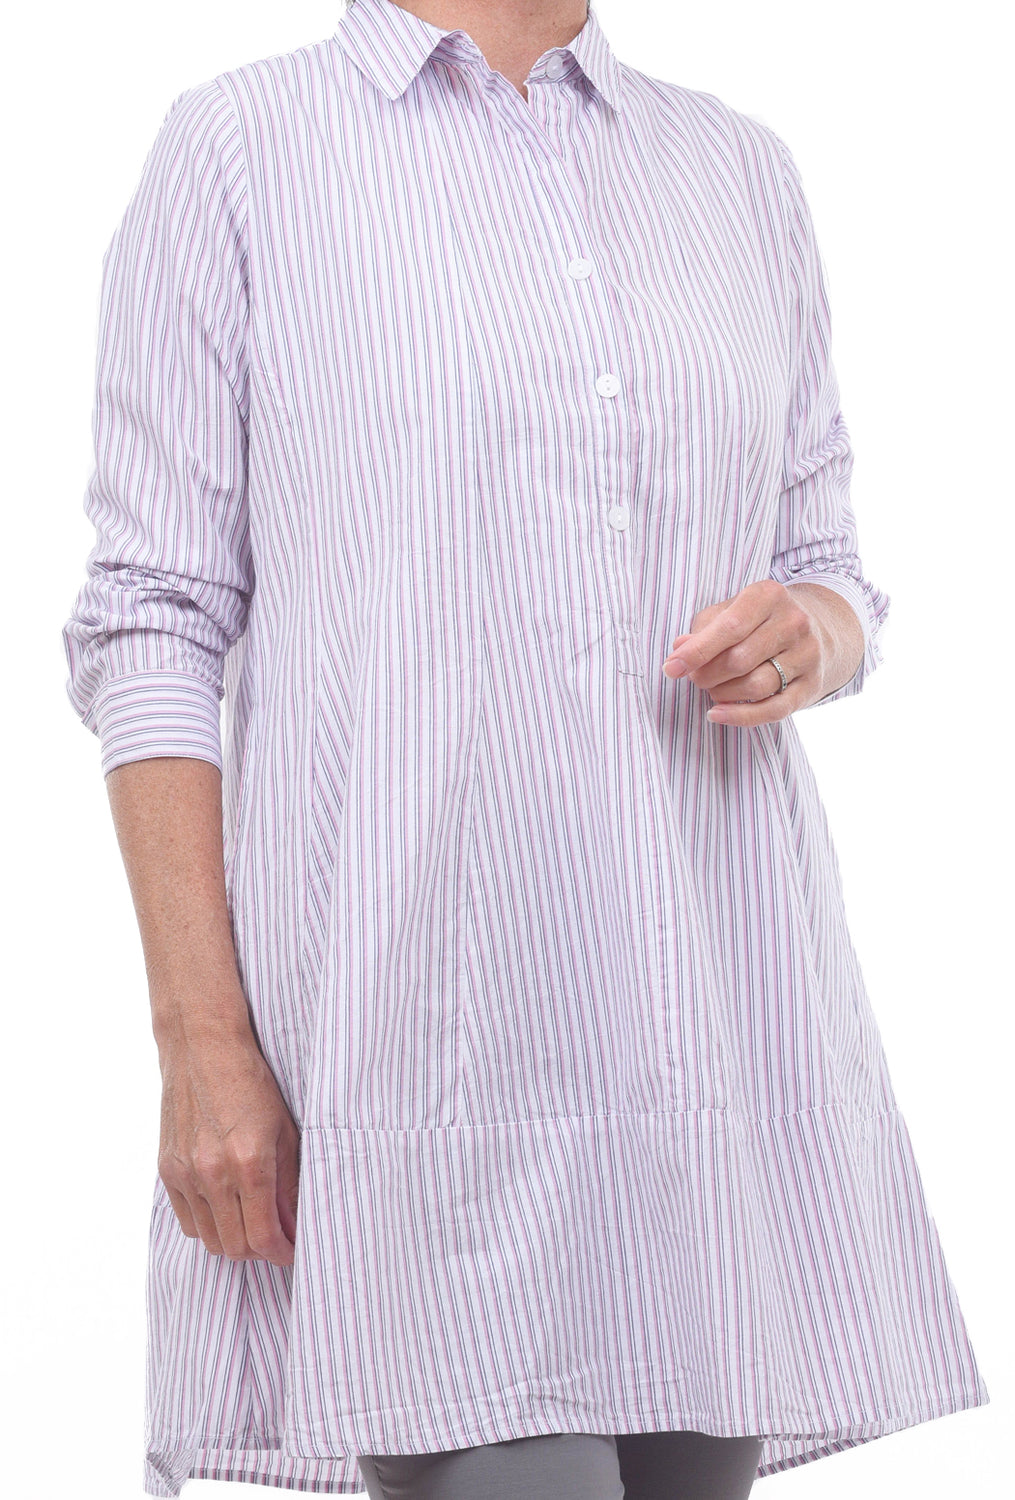 Tulip Gillian Shirt, Montclair Stripe